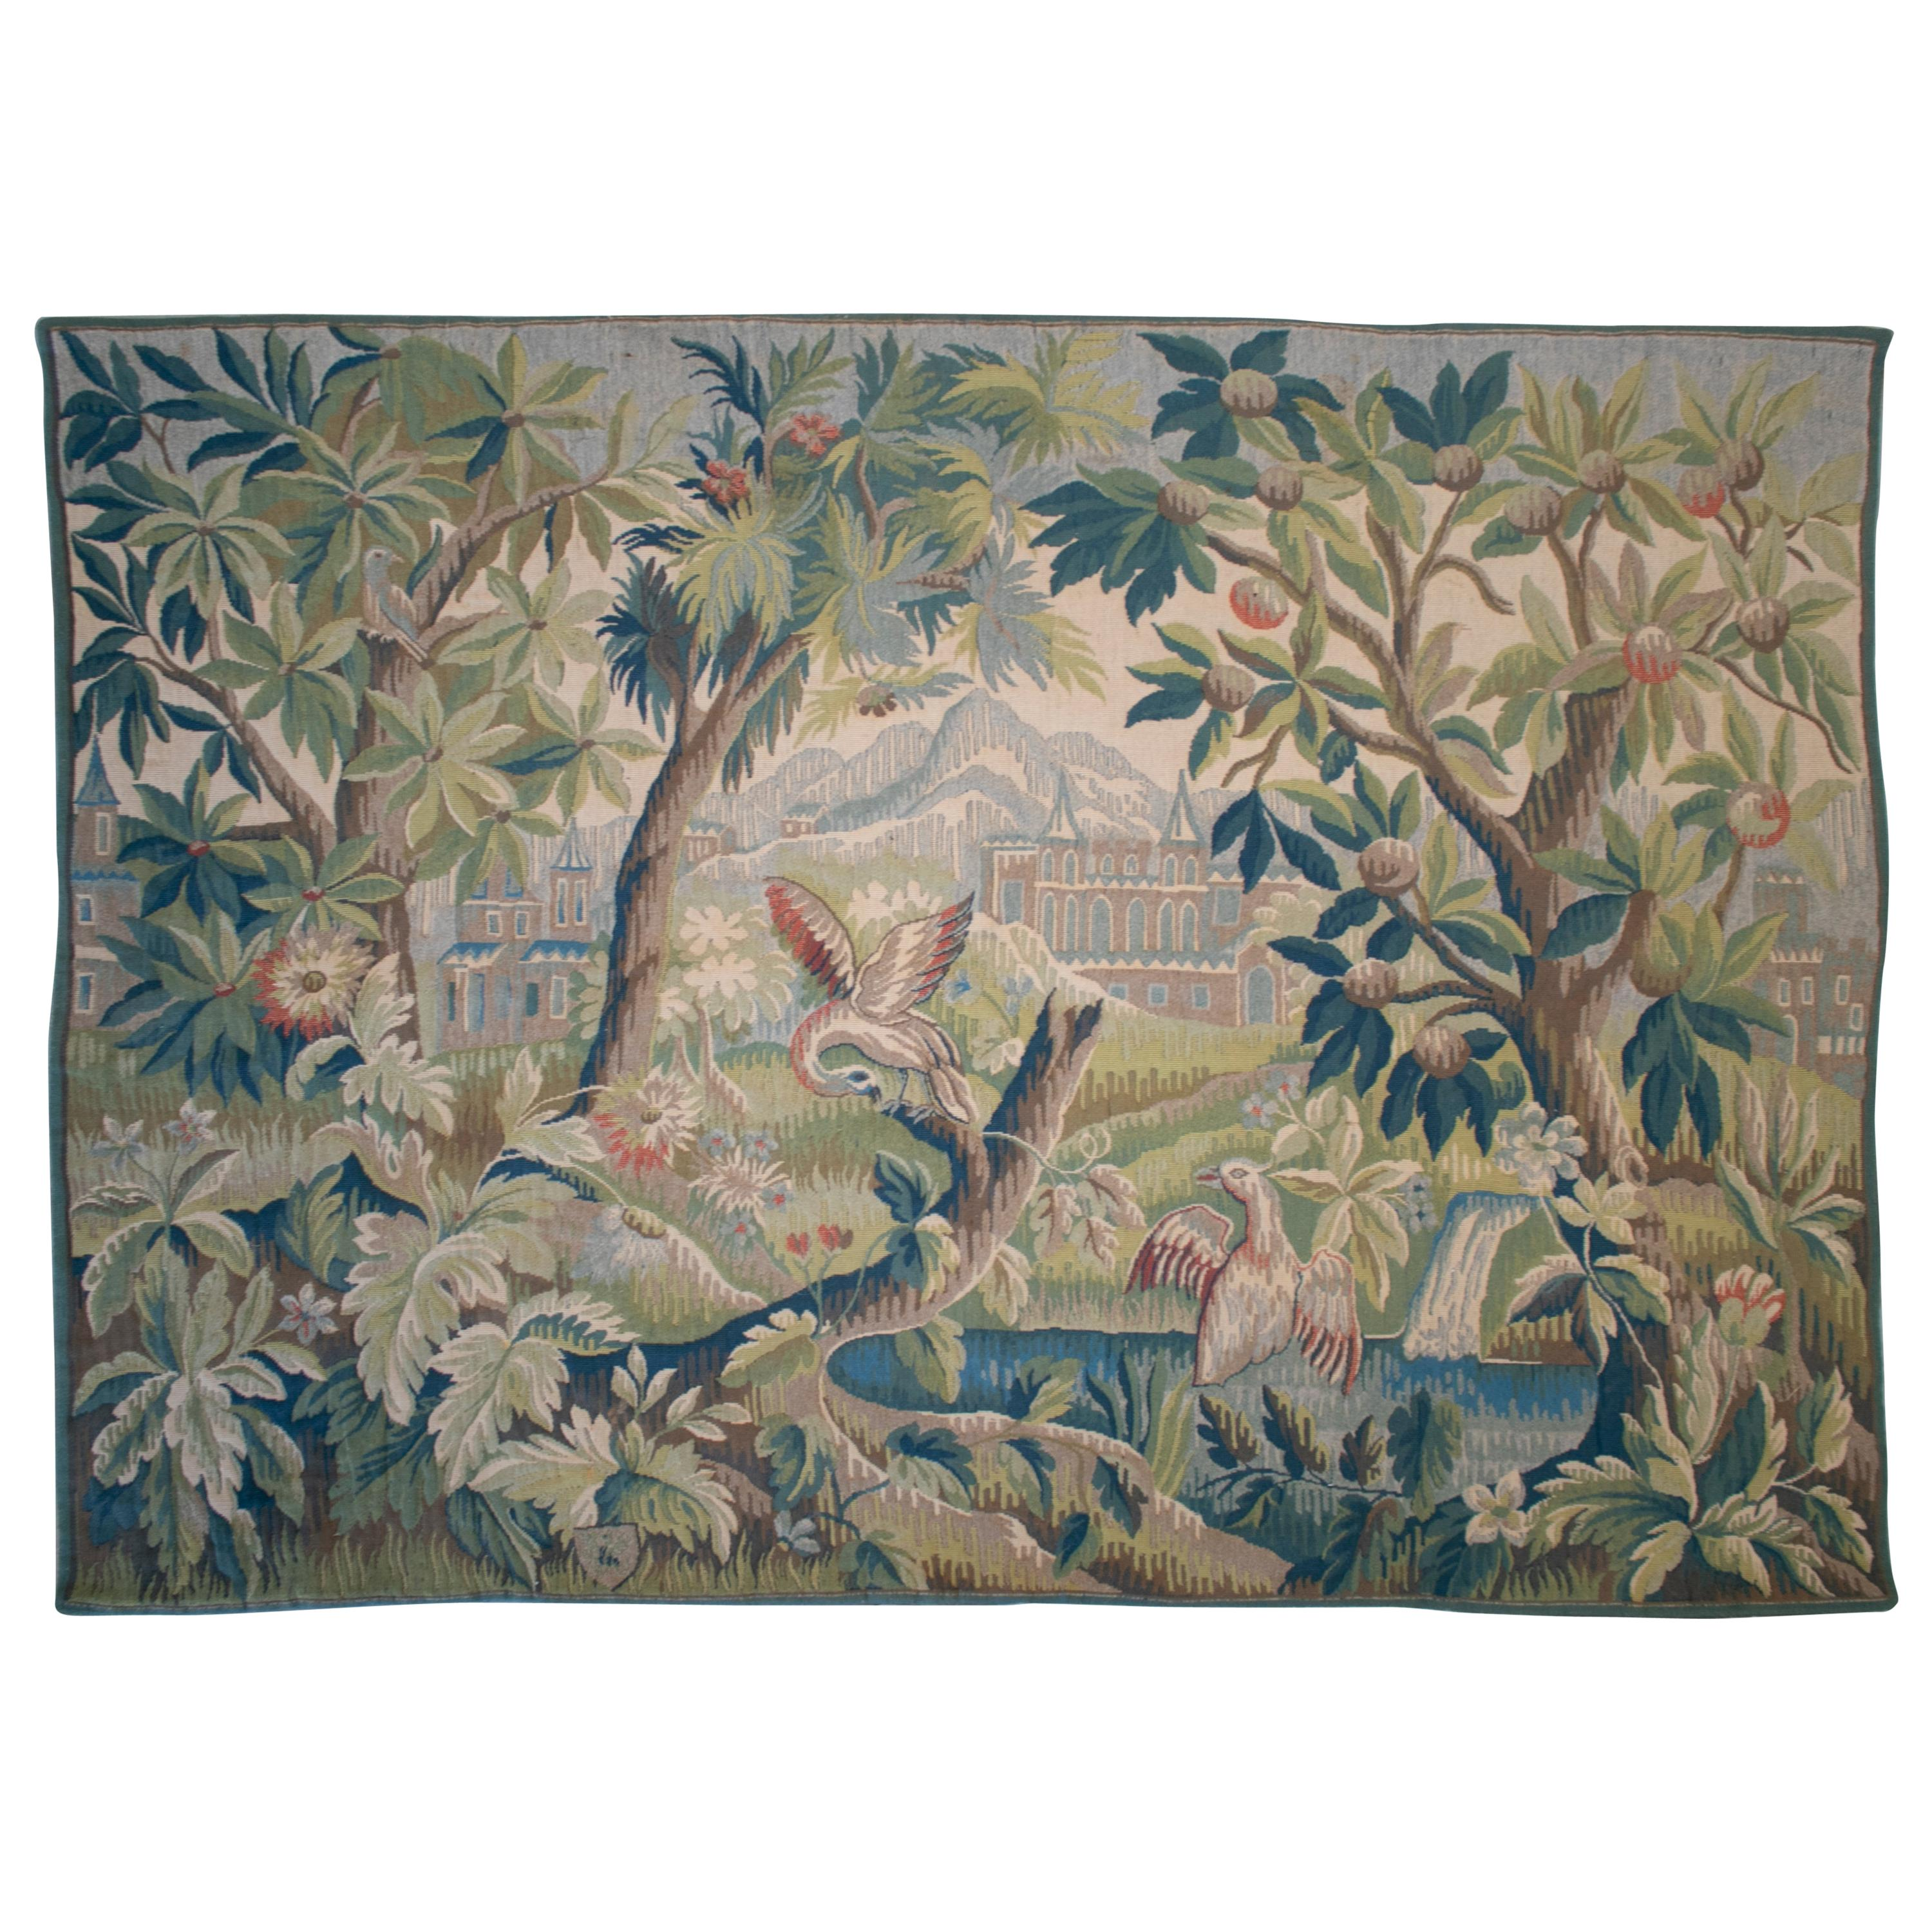 19th Century French Hand Woven Tapestry Scenery with Birds